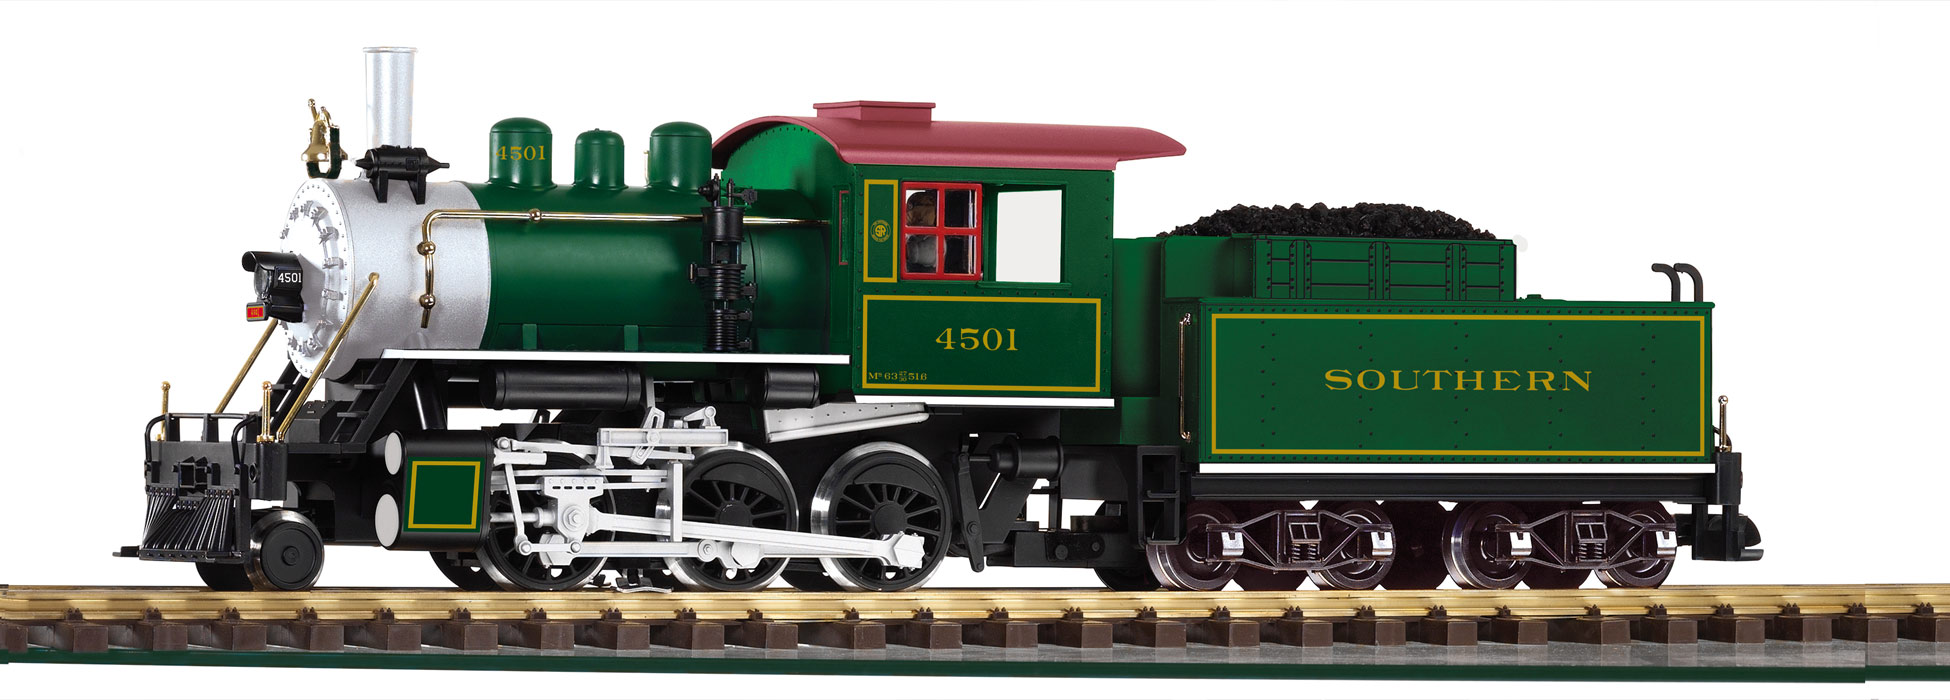 Model Trains & Hobby Items in India | Model Trains in